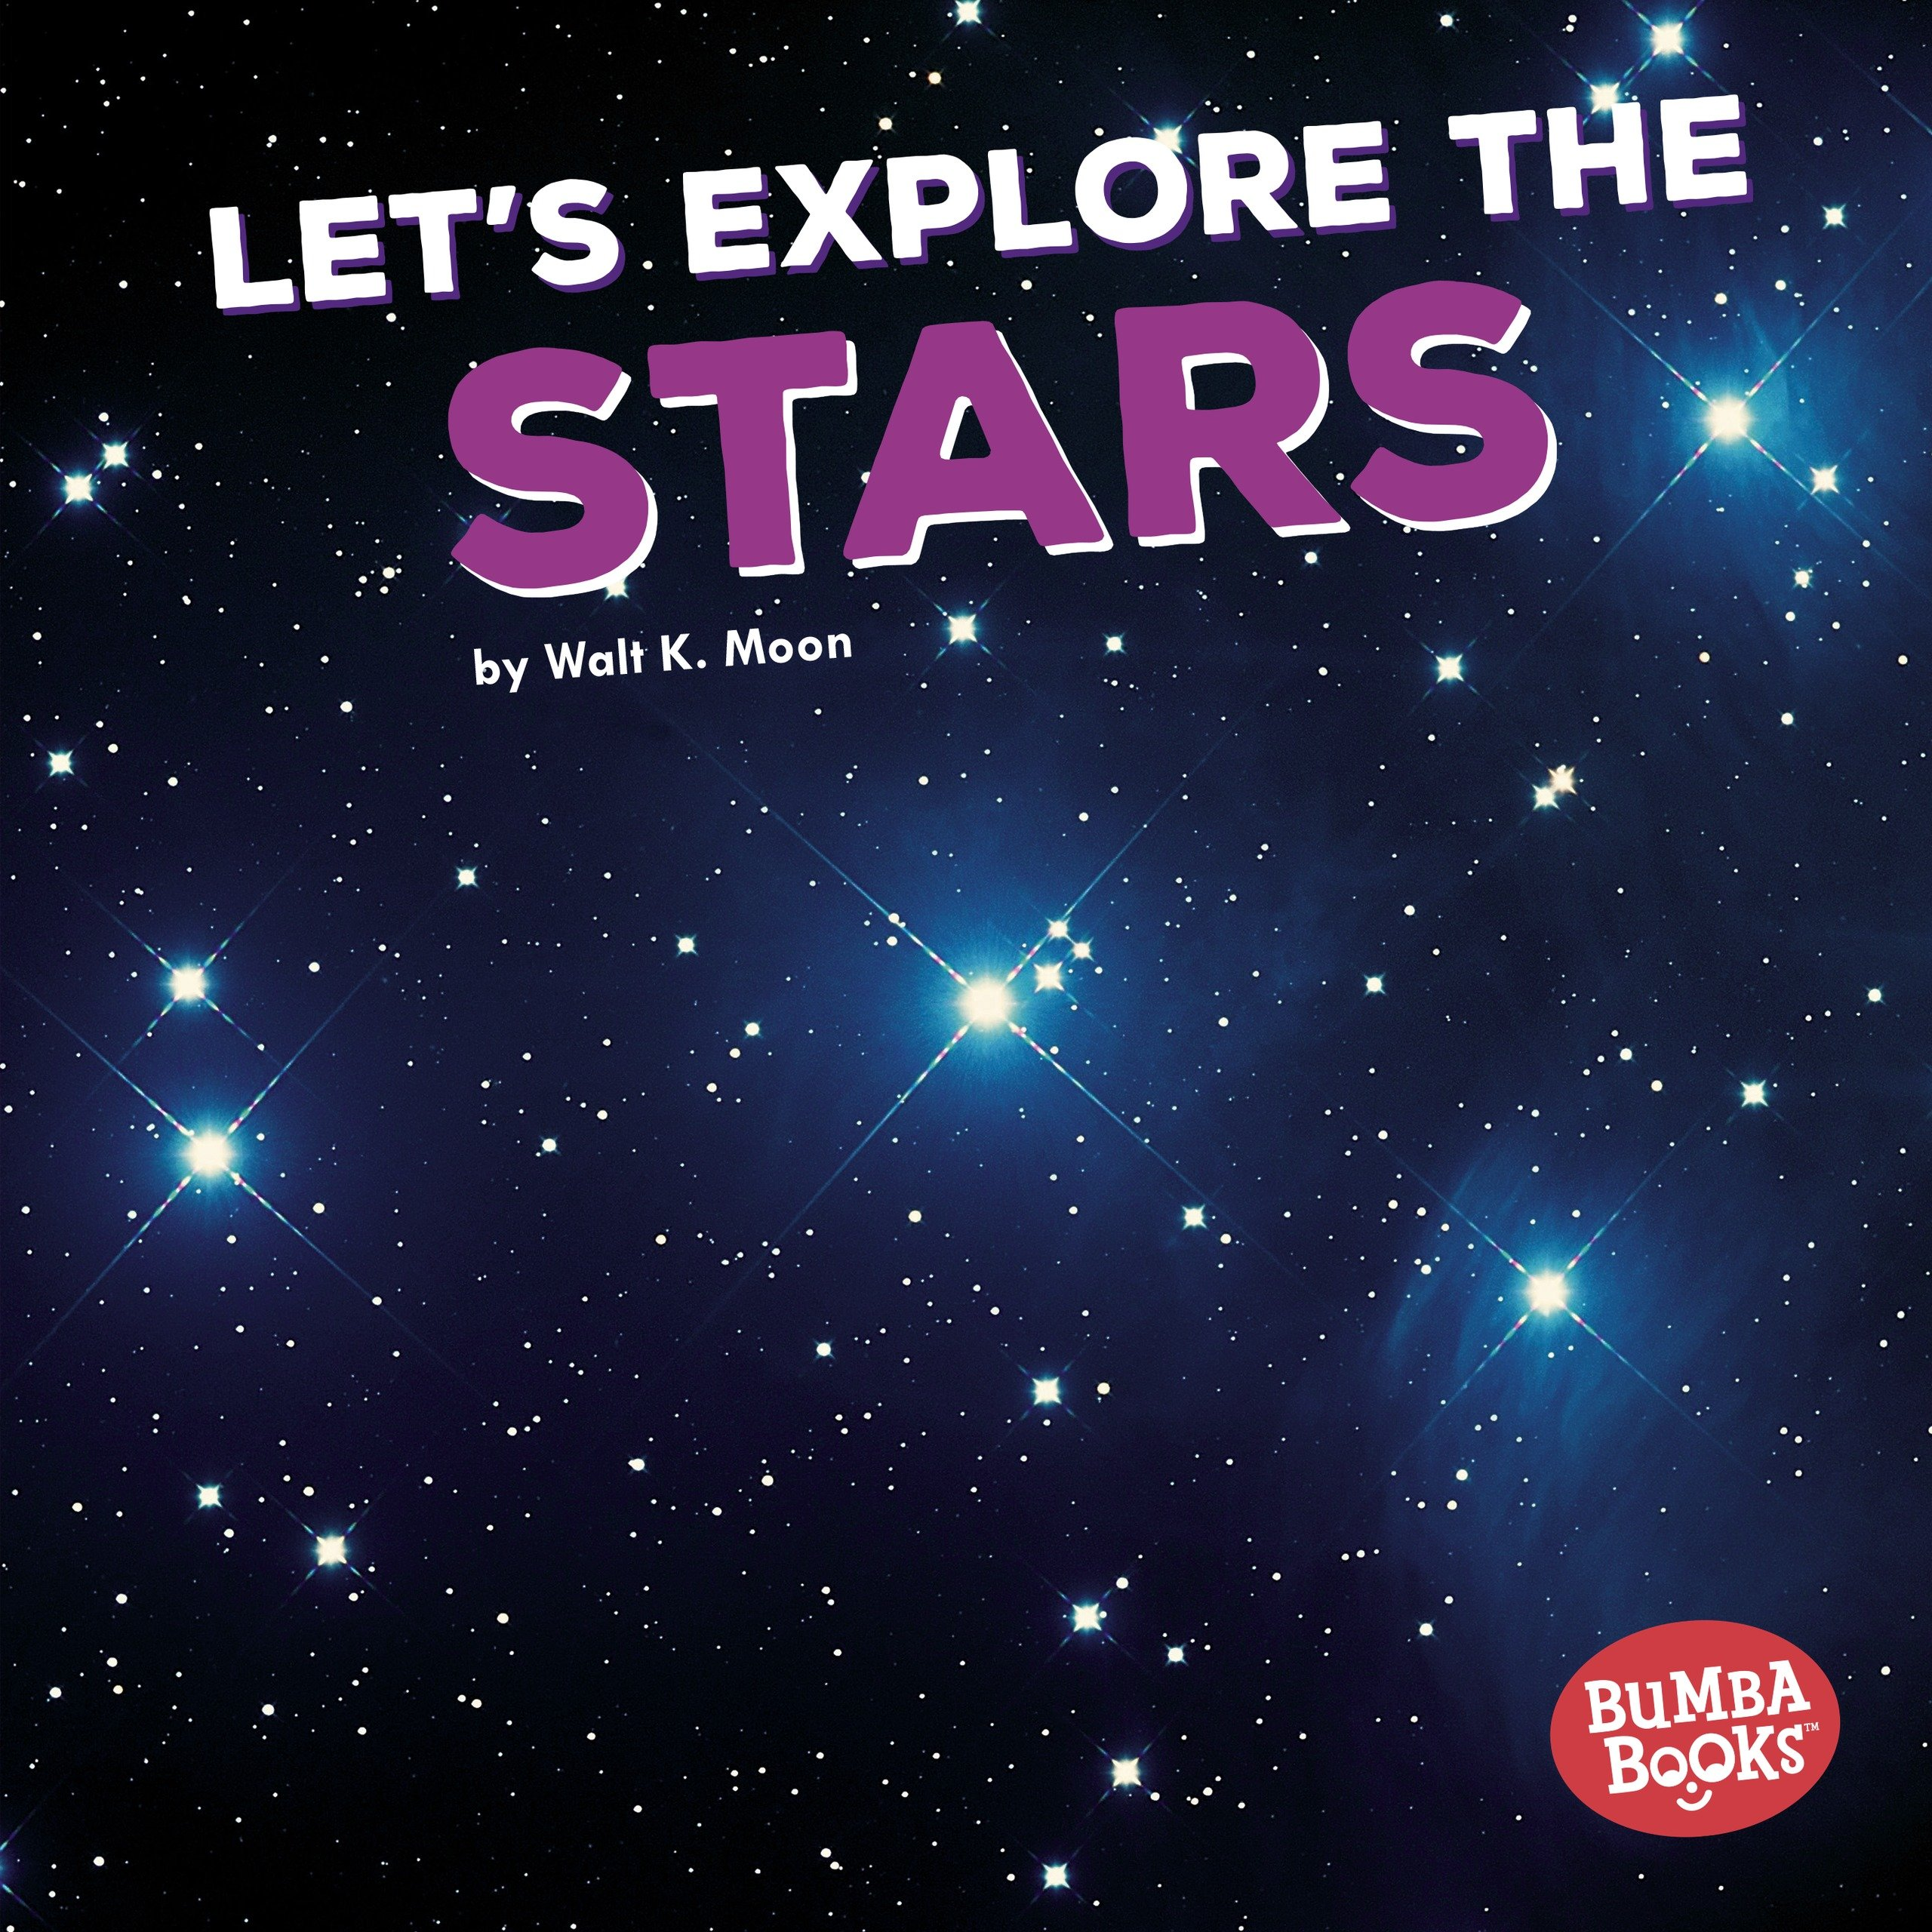 a92e10f16ad4 Let s Explore the Stars (First Look at Space) (Bumba Books a First Look at  Space) (Bumba Books  First Look at Space) Library Binding – August 1